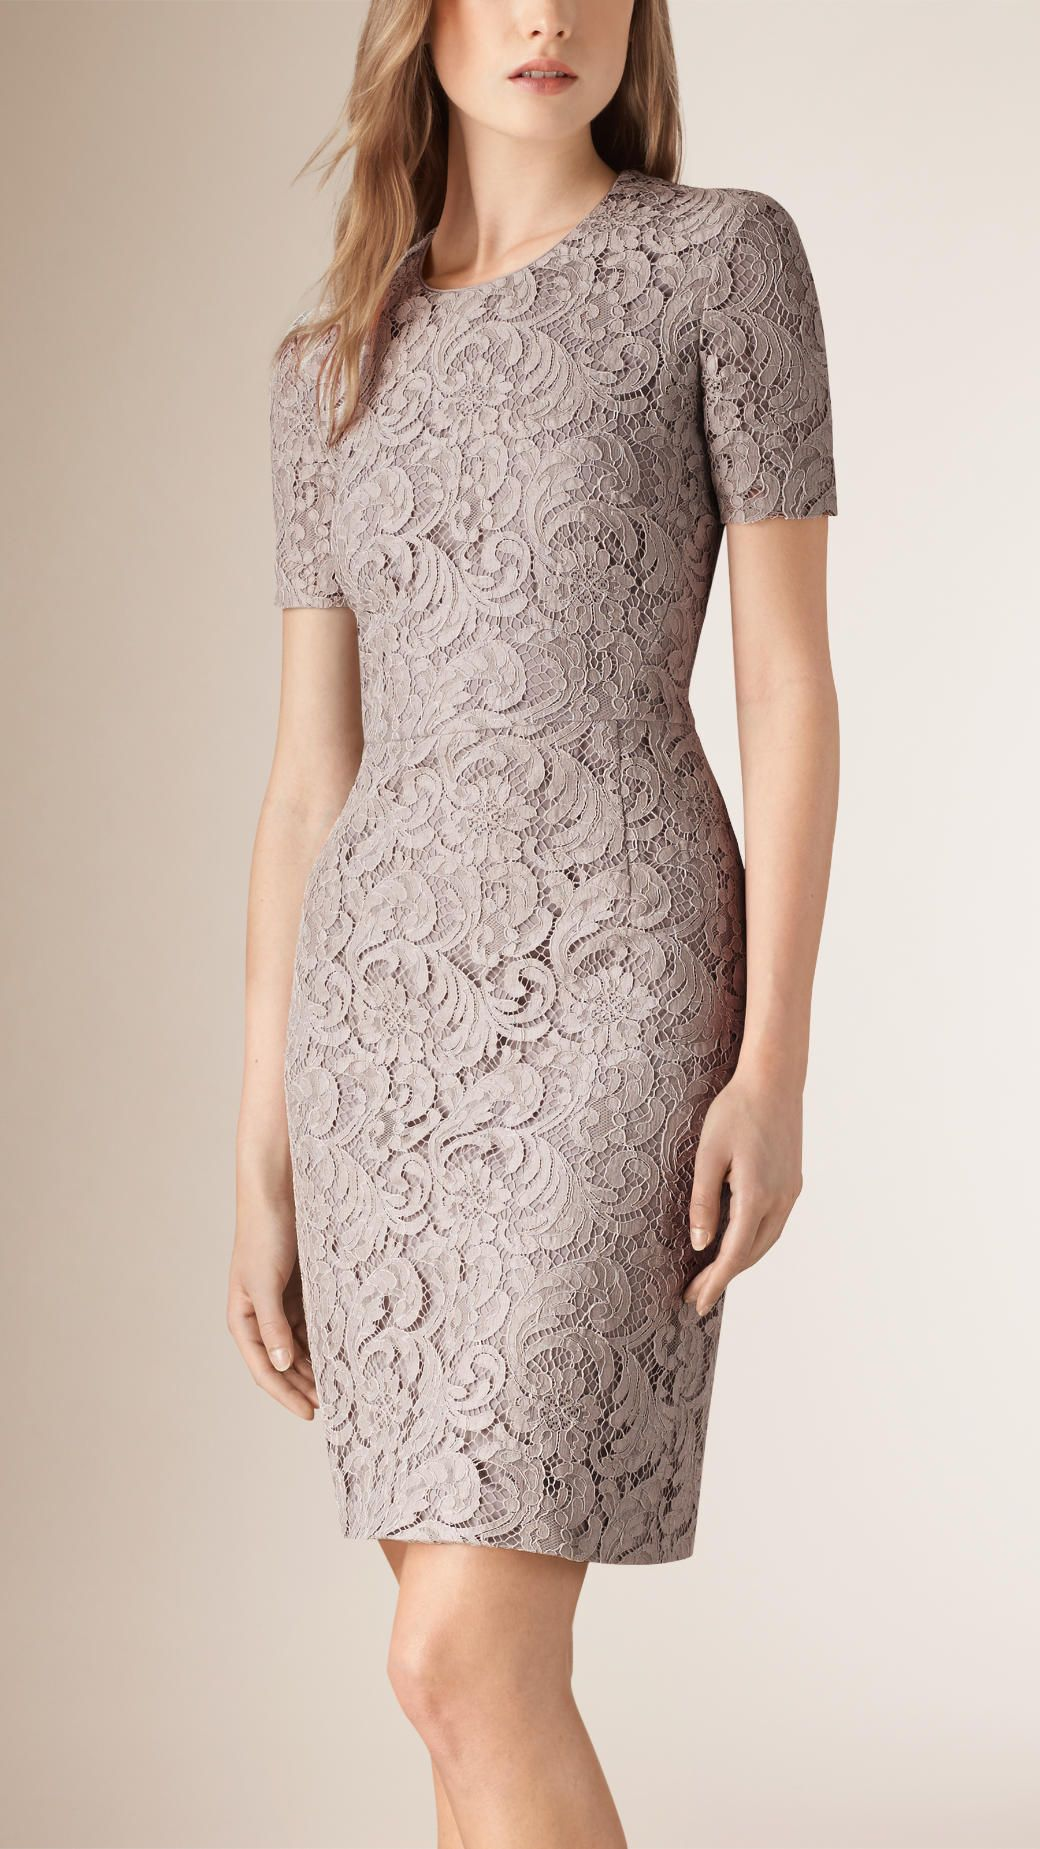 French Lace Shift Dress | Burberry | Moda | Pinterest | French lace ...